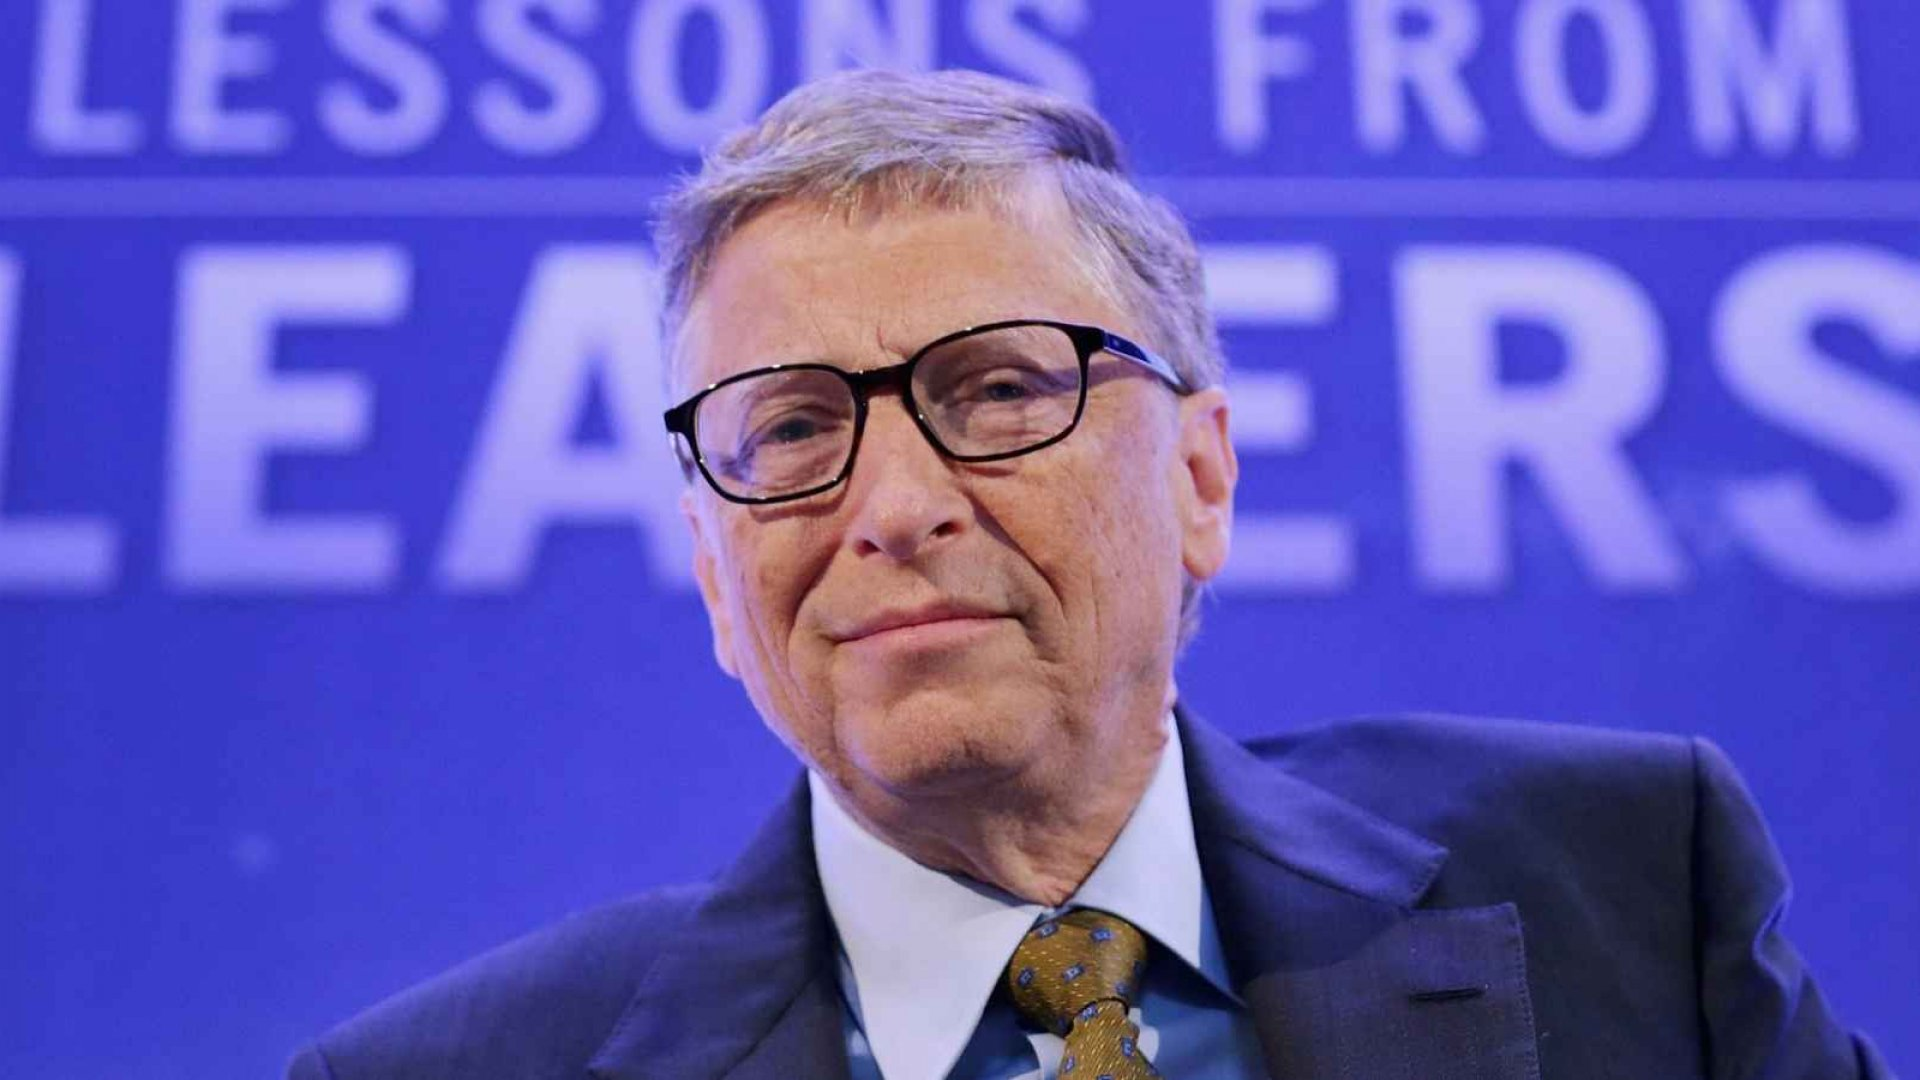 Bill Gates had a lot to say about running a business, not just how to do tech.